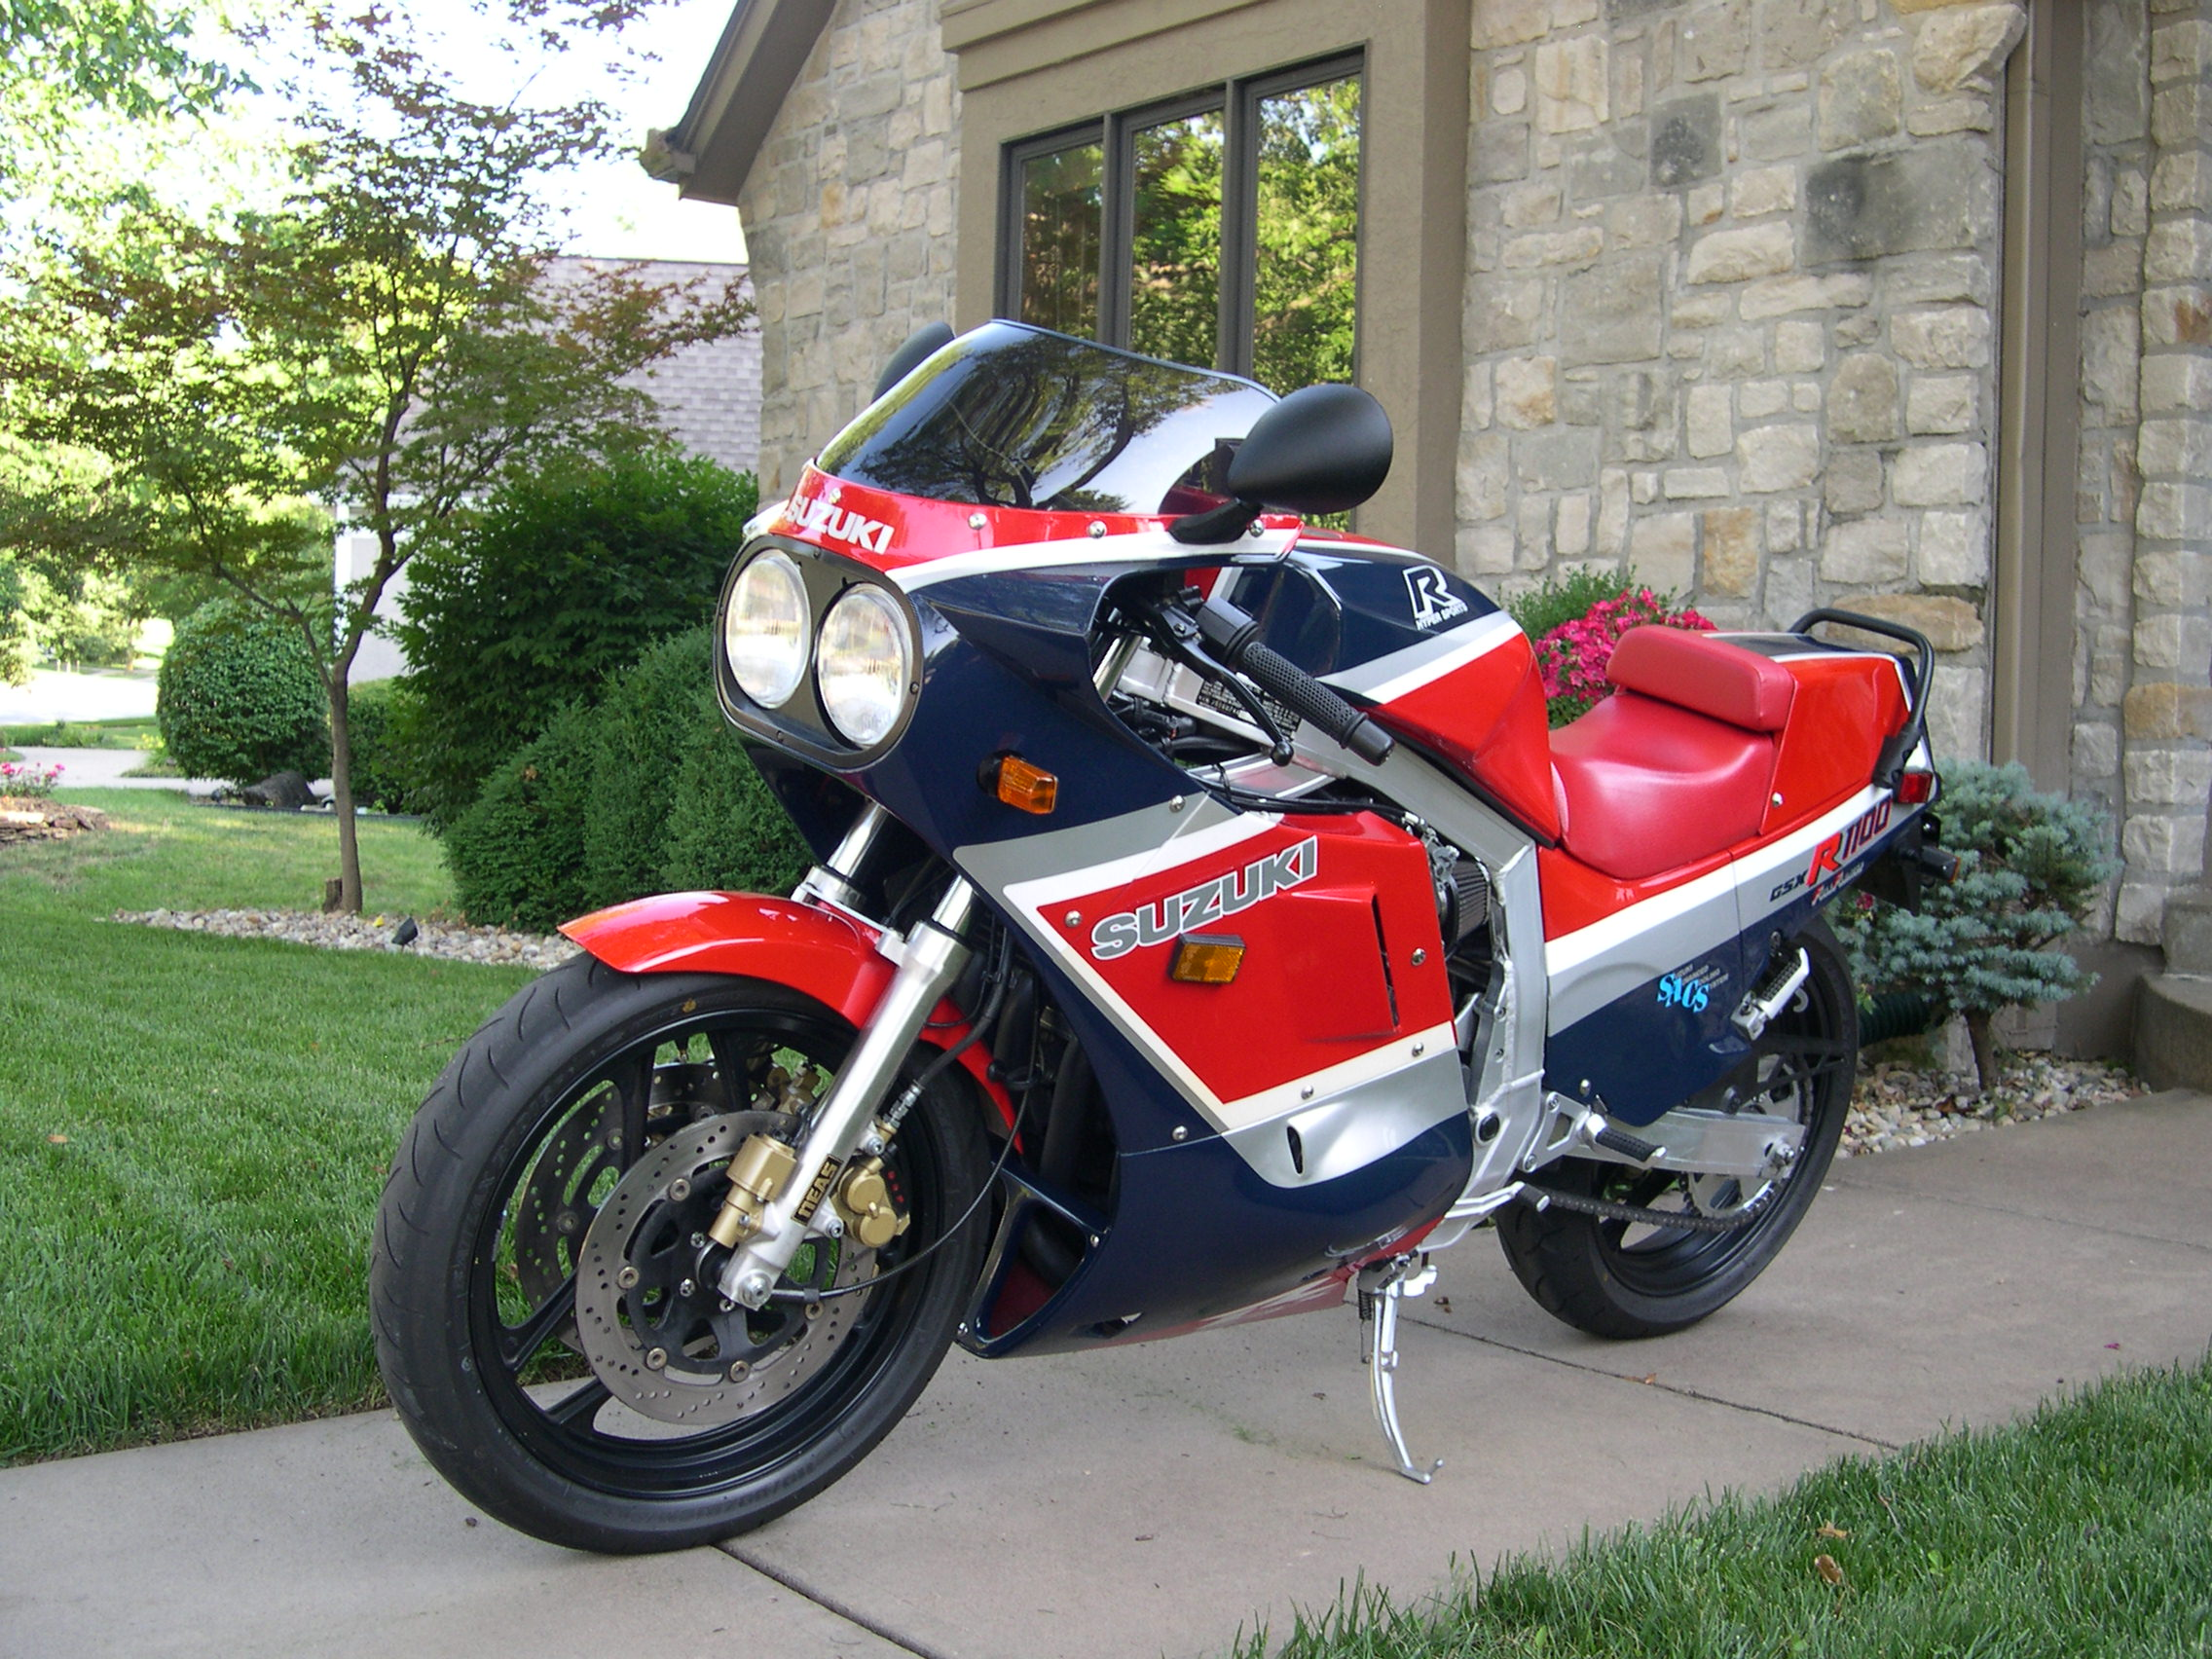 39 86 suzuki gsxr 1100 first year of a classic rare sportbikes for sale. Black Bedroom Furniture Sets. Home Design Ideas